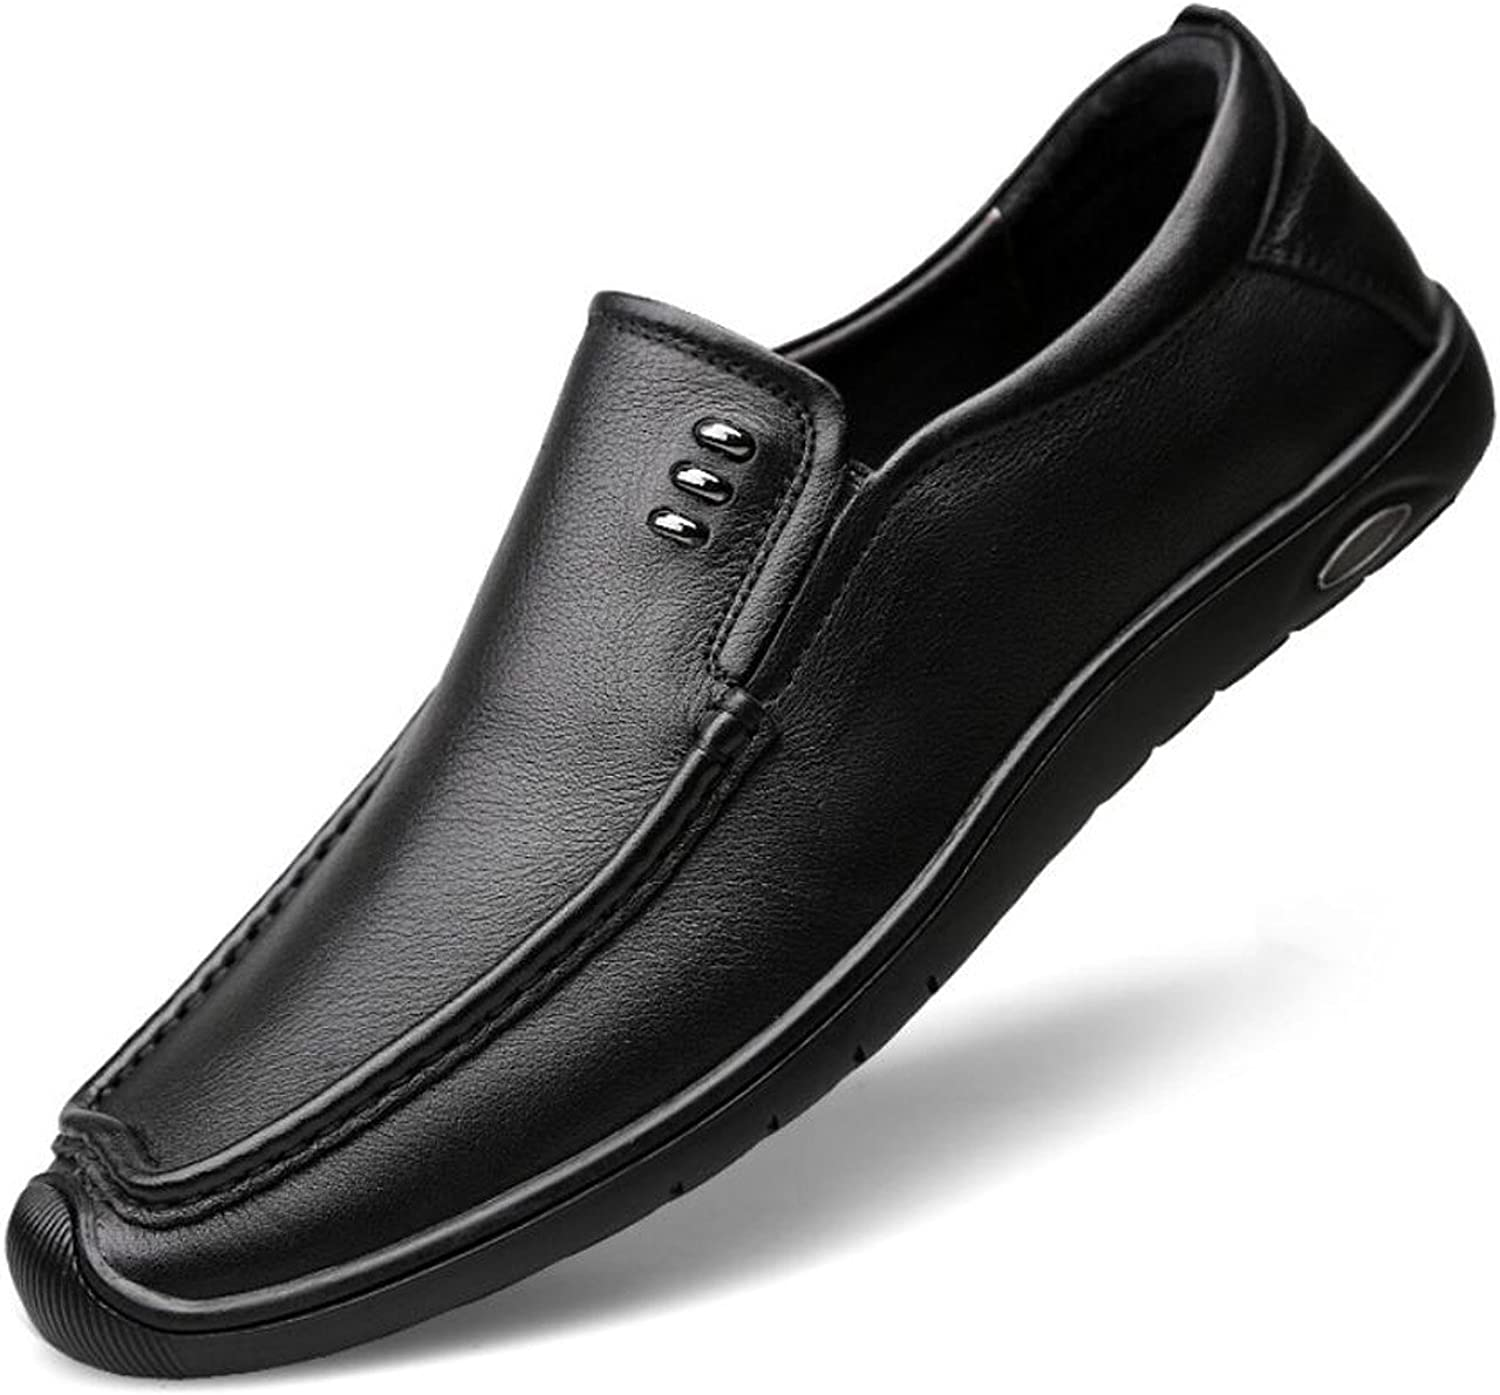 DANDANJIE Men's Casual Flat Loafers Fashion Slip On Driving shoes for Office Business Work Evening Party Casual